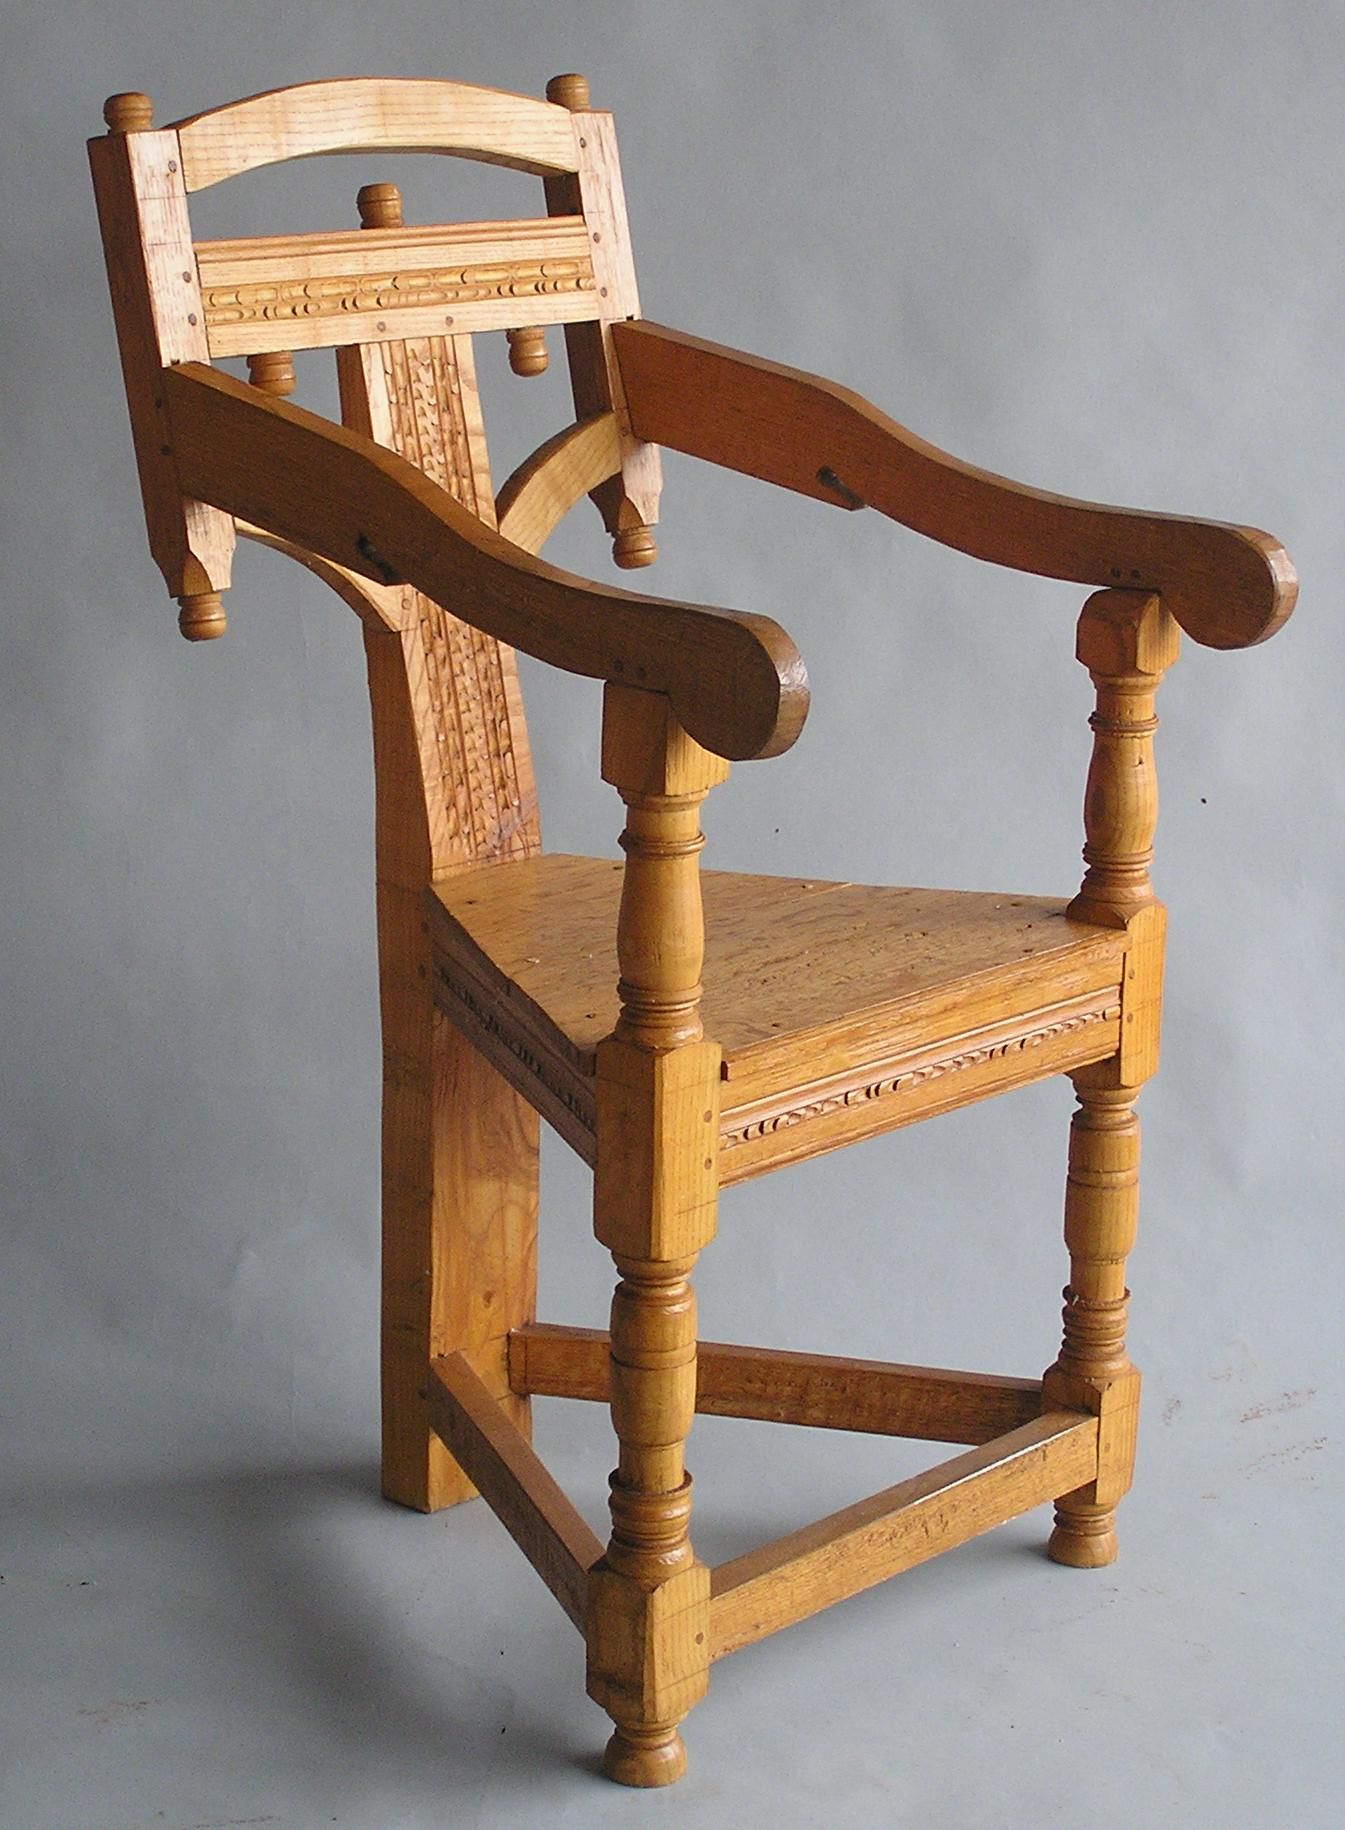 This Wainscot Chair Is An Interesting Twist To A Chair Considered A Of  Honor Back In Colonial America. This Wainscot Has Simple Turnings And  Carvings.